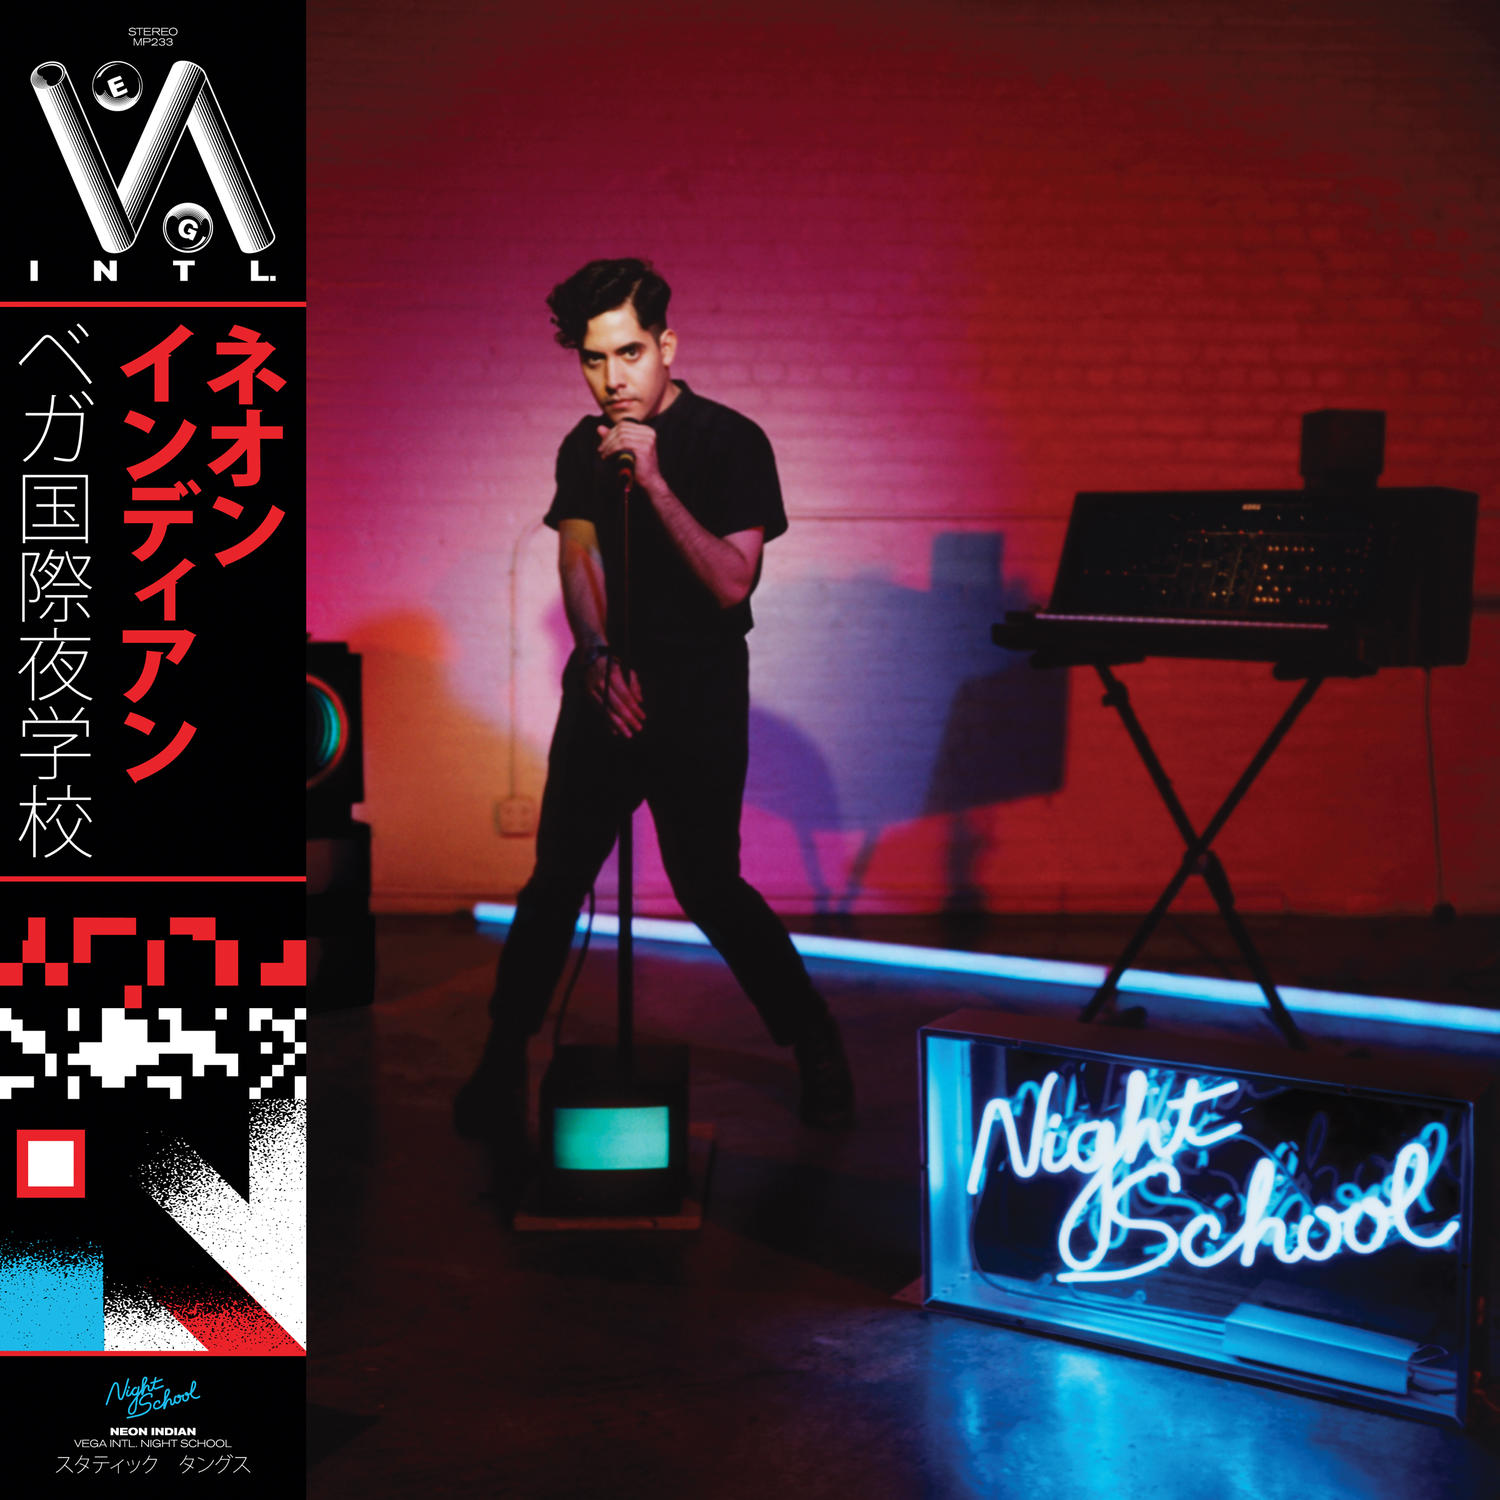 Review of 'VEGA INTL. Night School', the new LP by Neon Indian, available October 16 on Mom + Pop Music/Transgressive